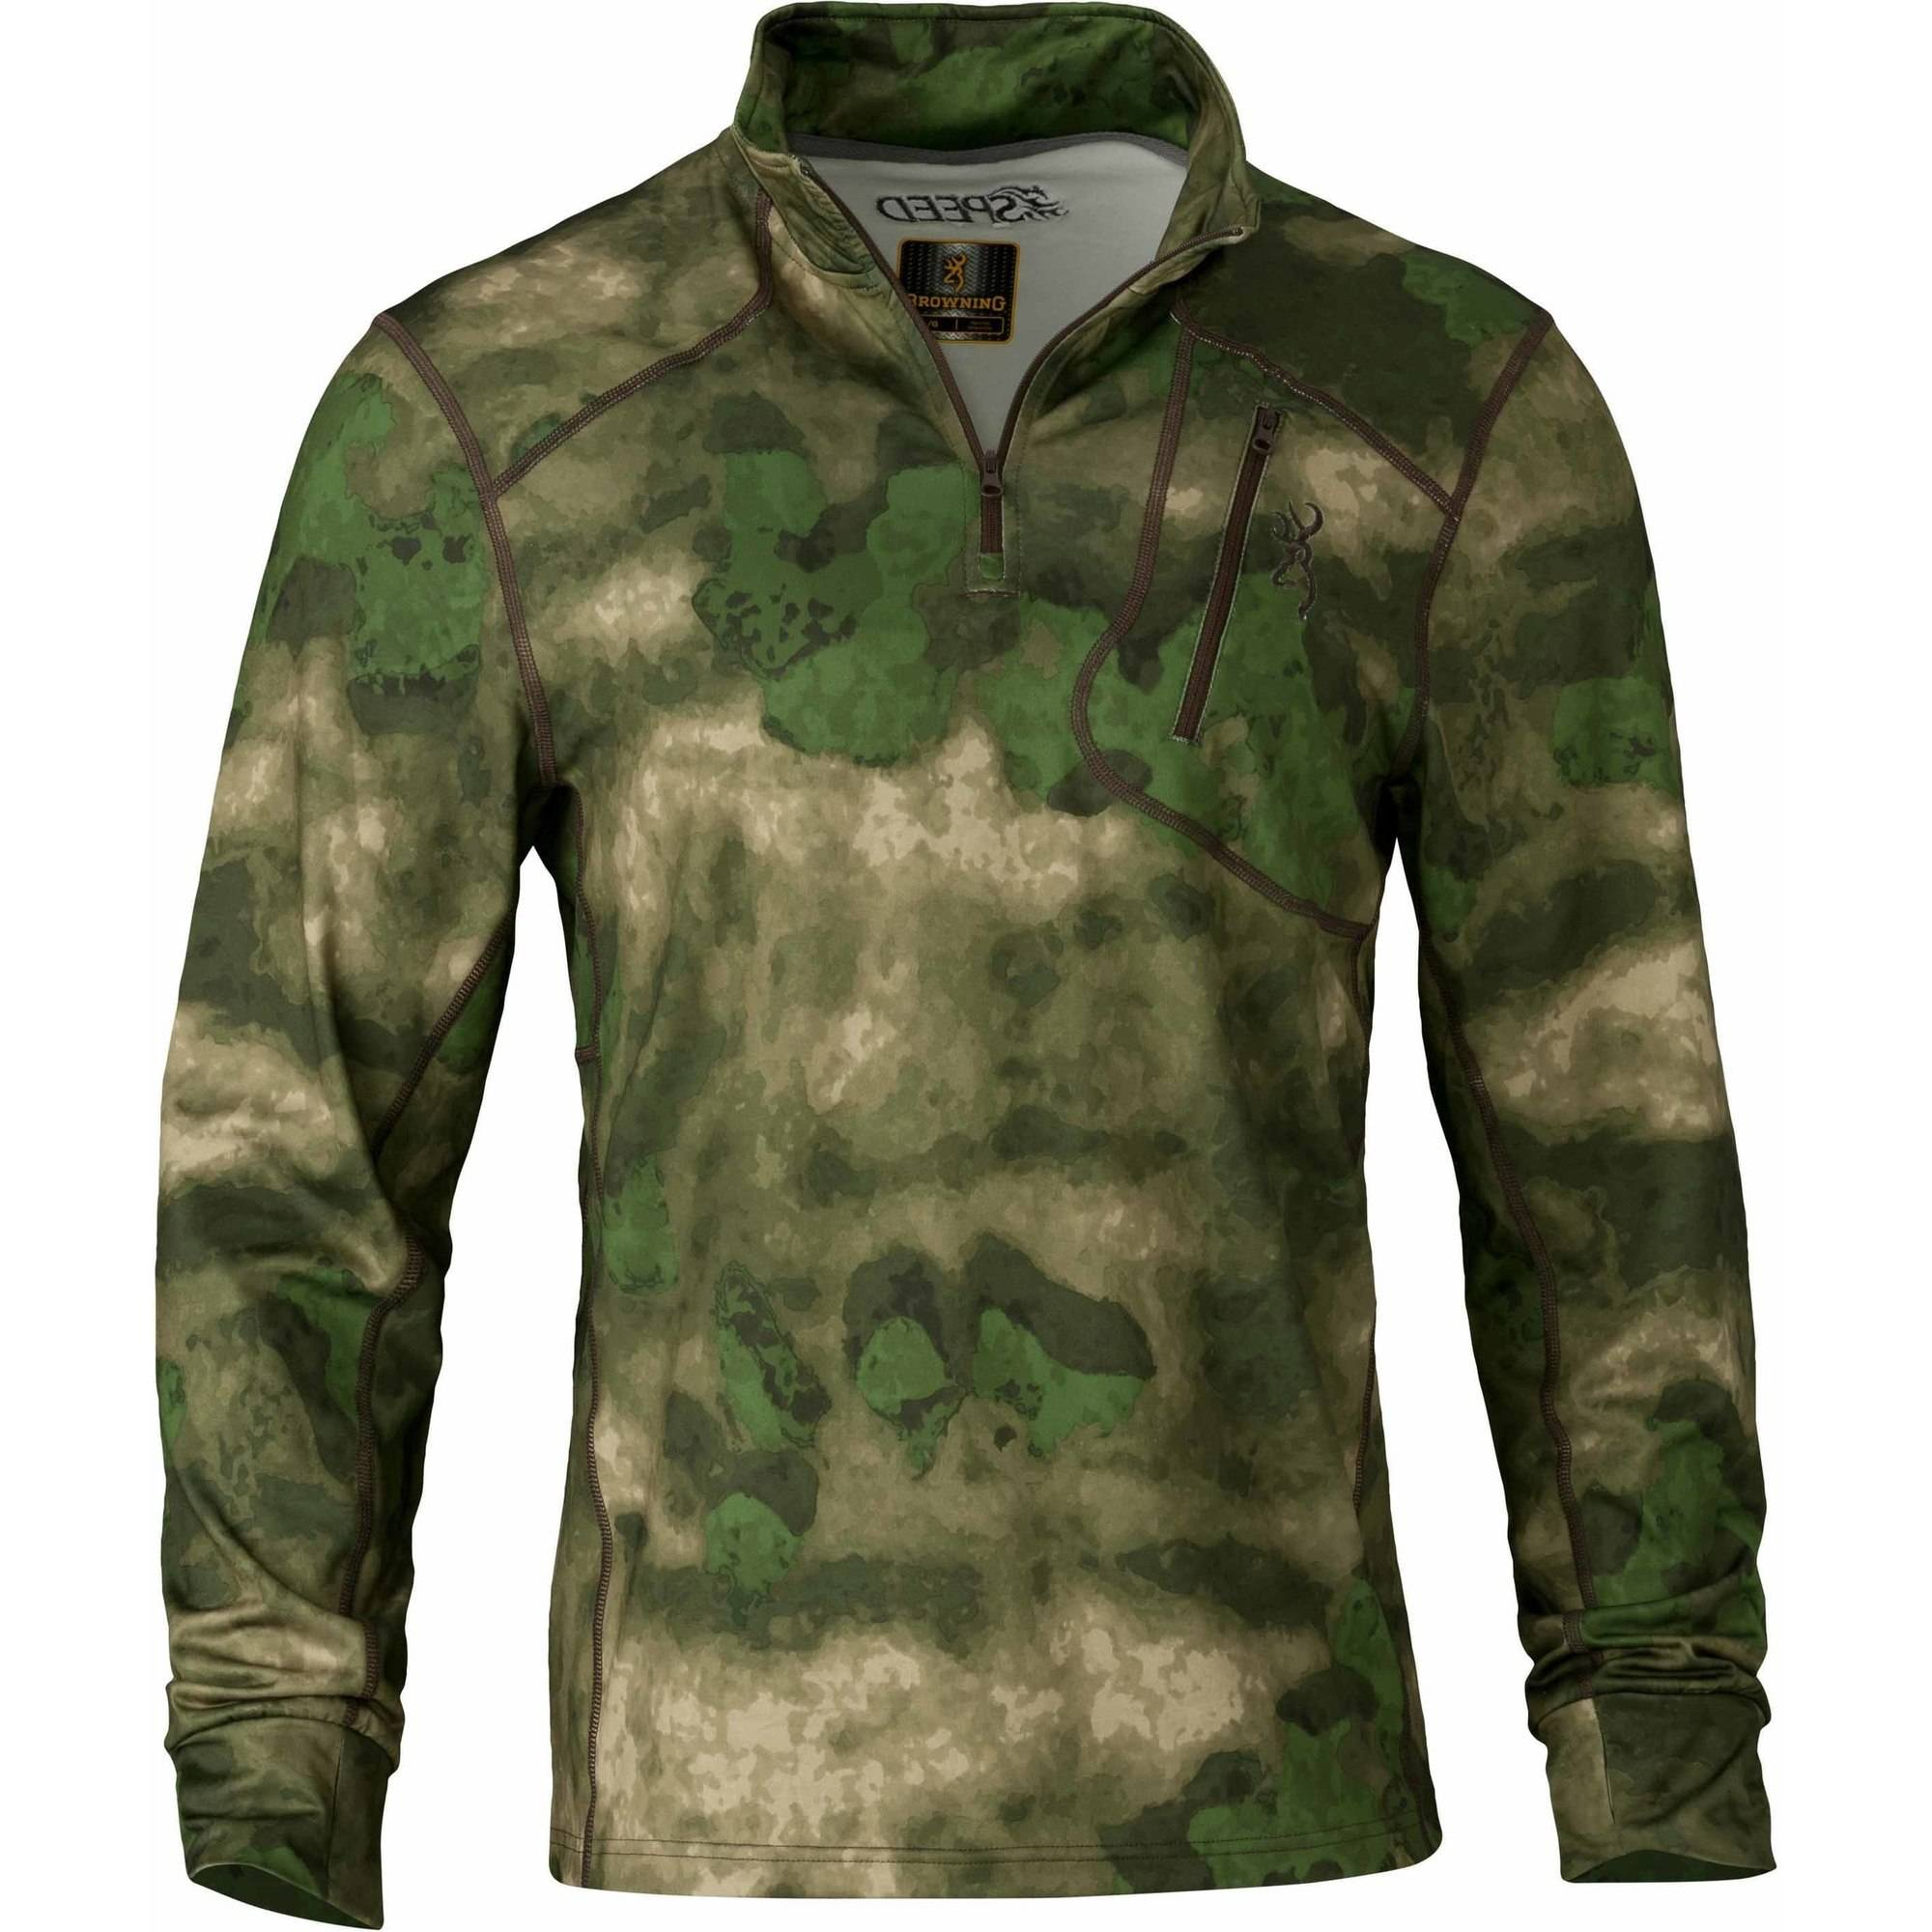 Hell's Canyon Speed Phase 1/4 Zip Top Shirt